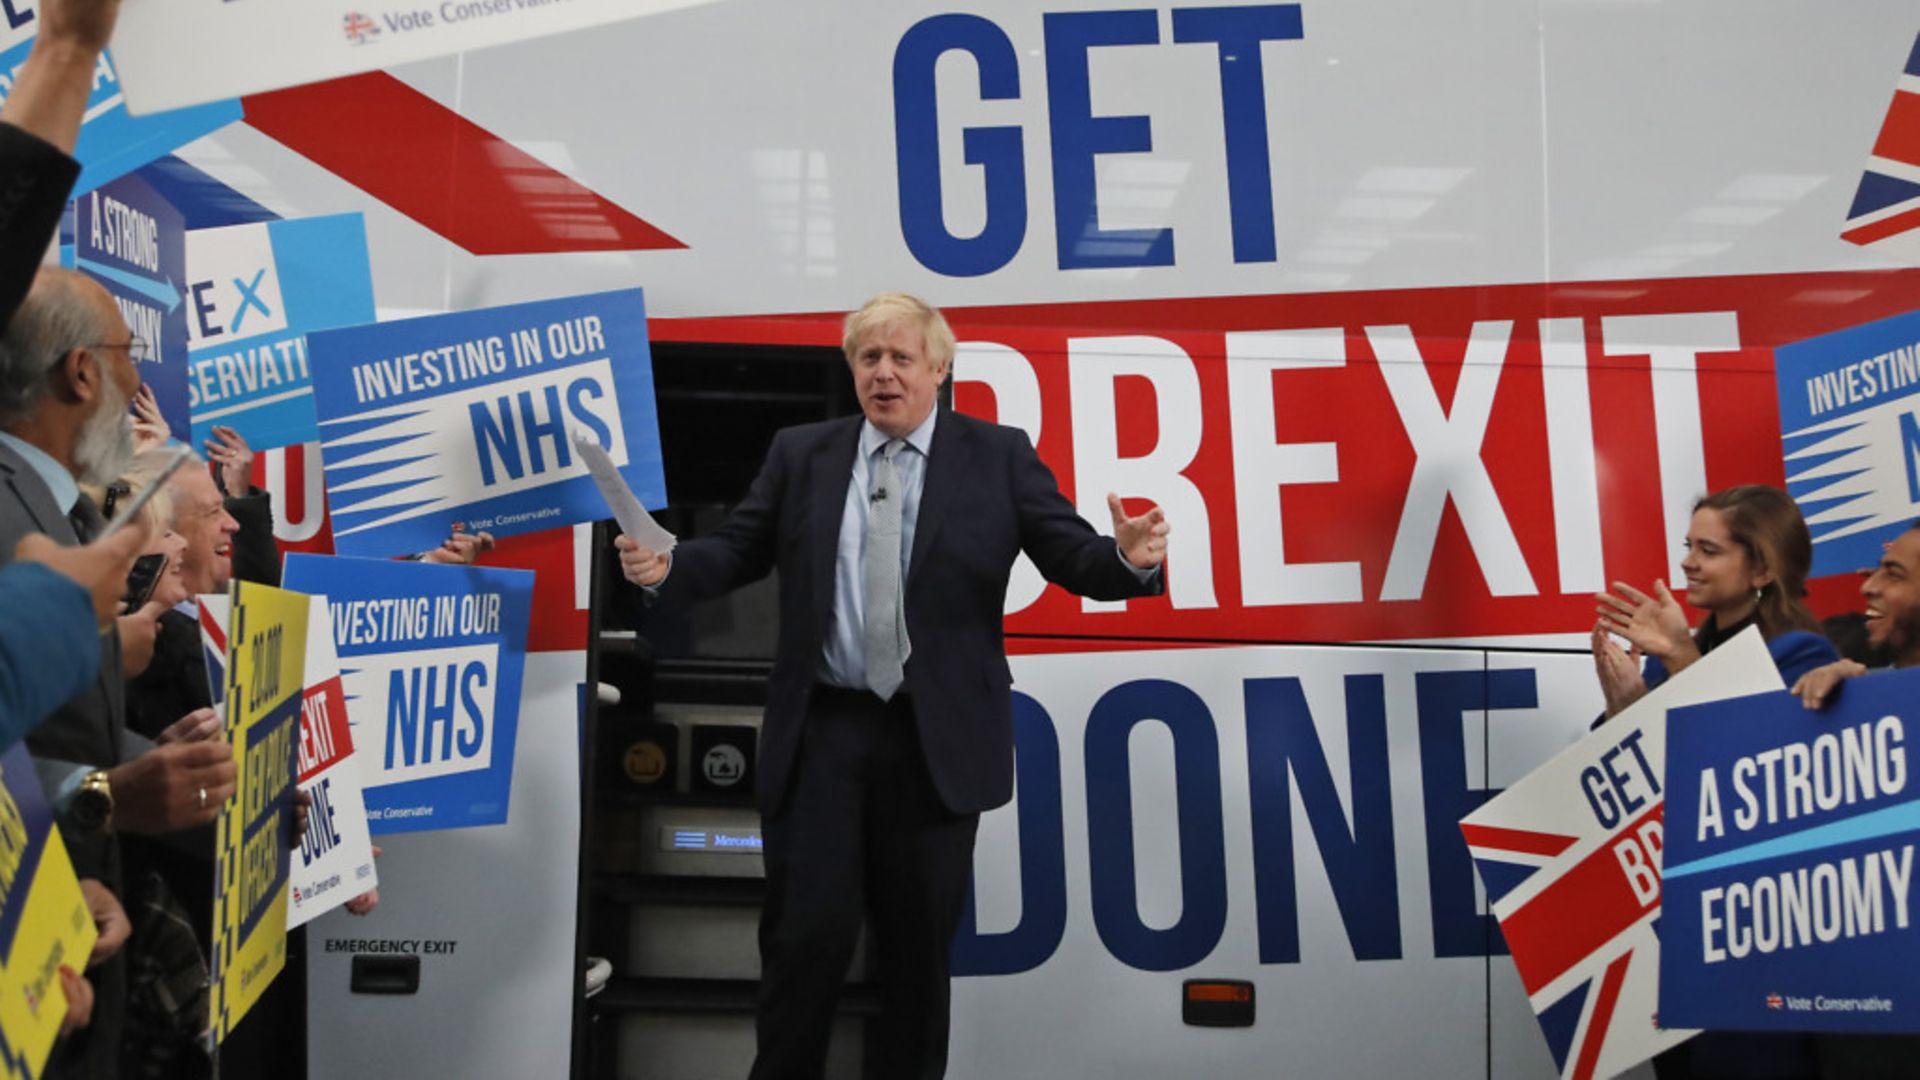 Prime Minister Boris Johnson addresses his supporters prior to boarding his general election campaign bus in Manchester - Credit: Getty Images